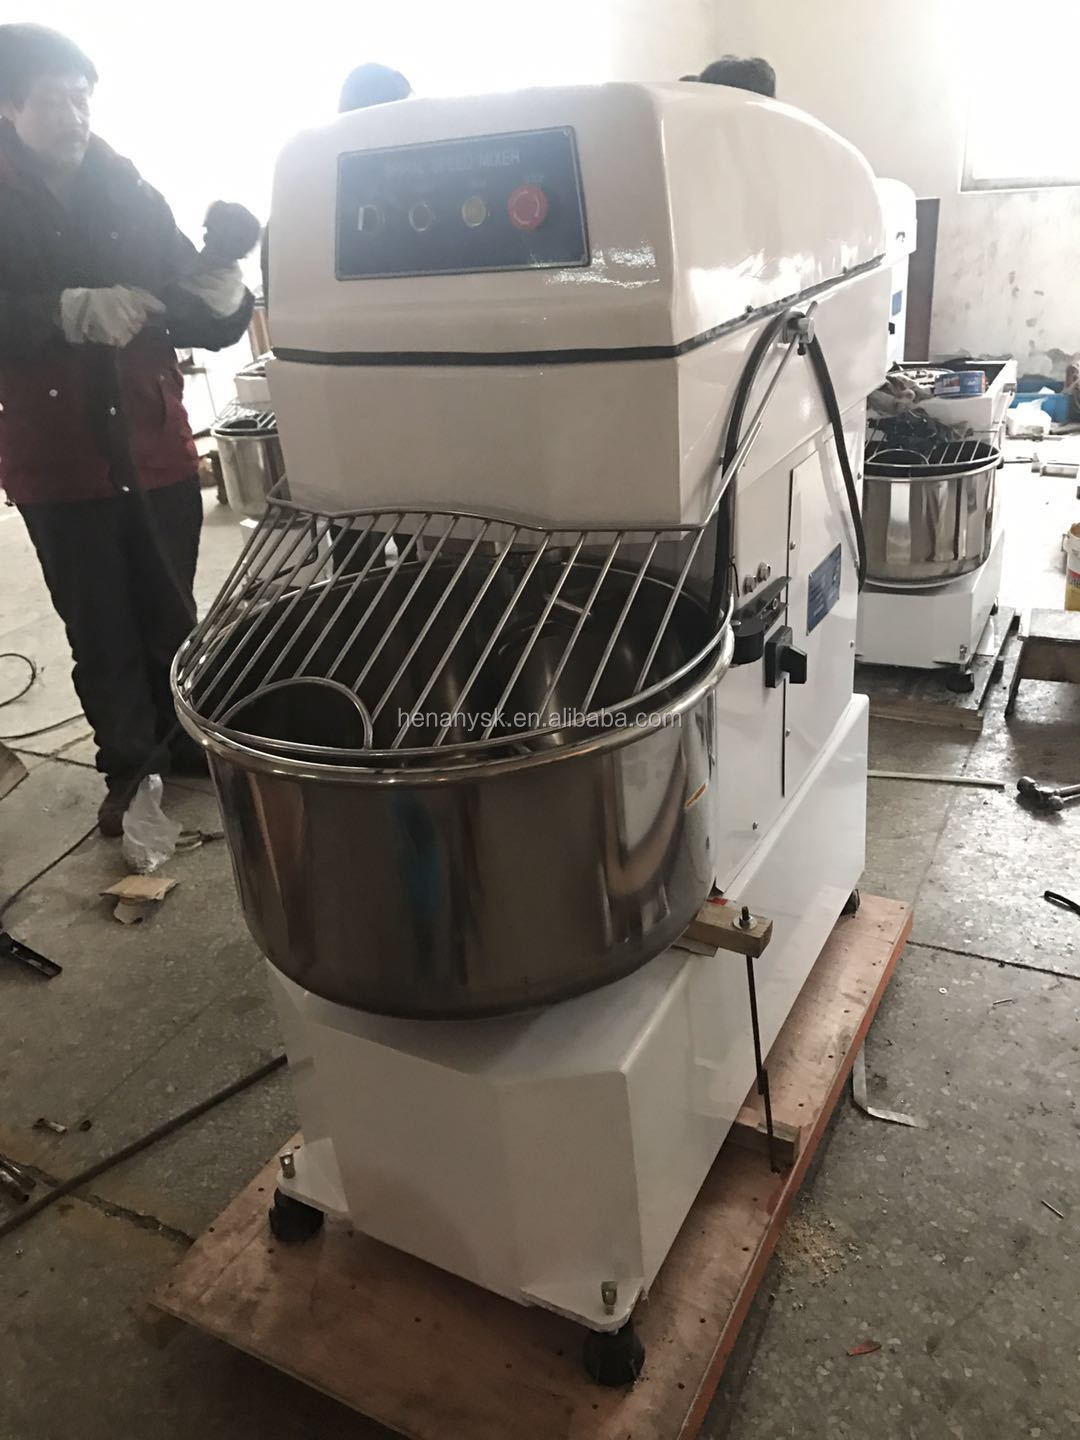 80L 35kg Commercial Flour Powder 2 Speed Spiral Dough Mixer Egg Mixing Machine Dough Mixer